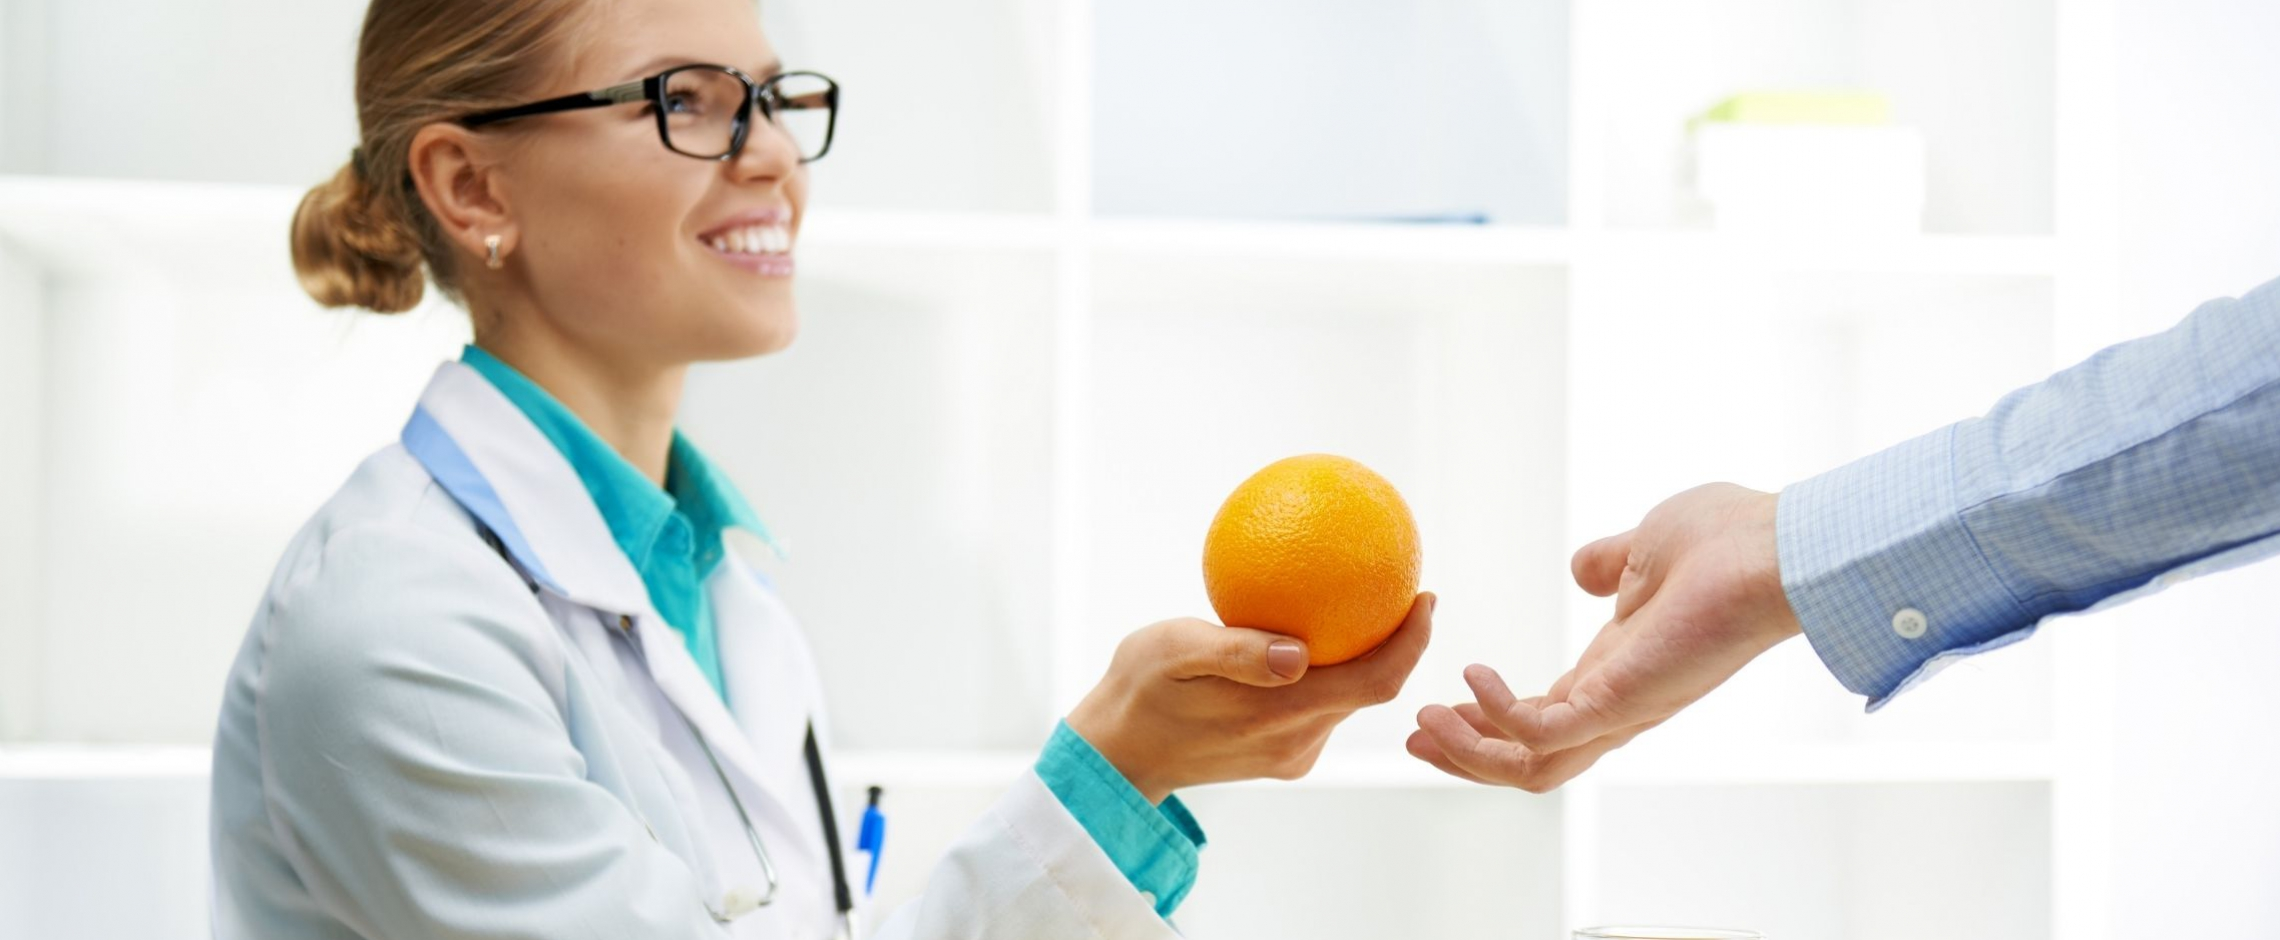 Dietitian working with person